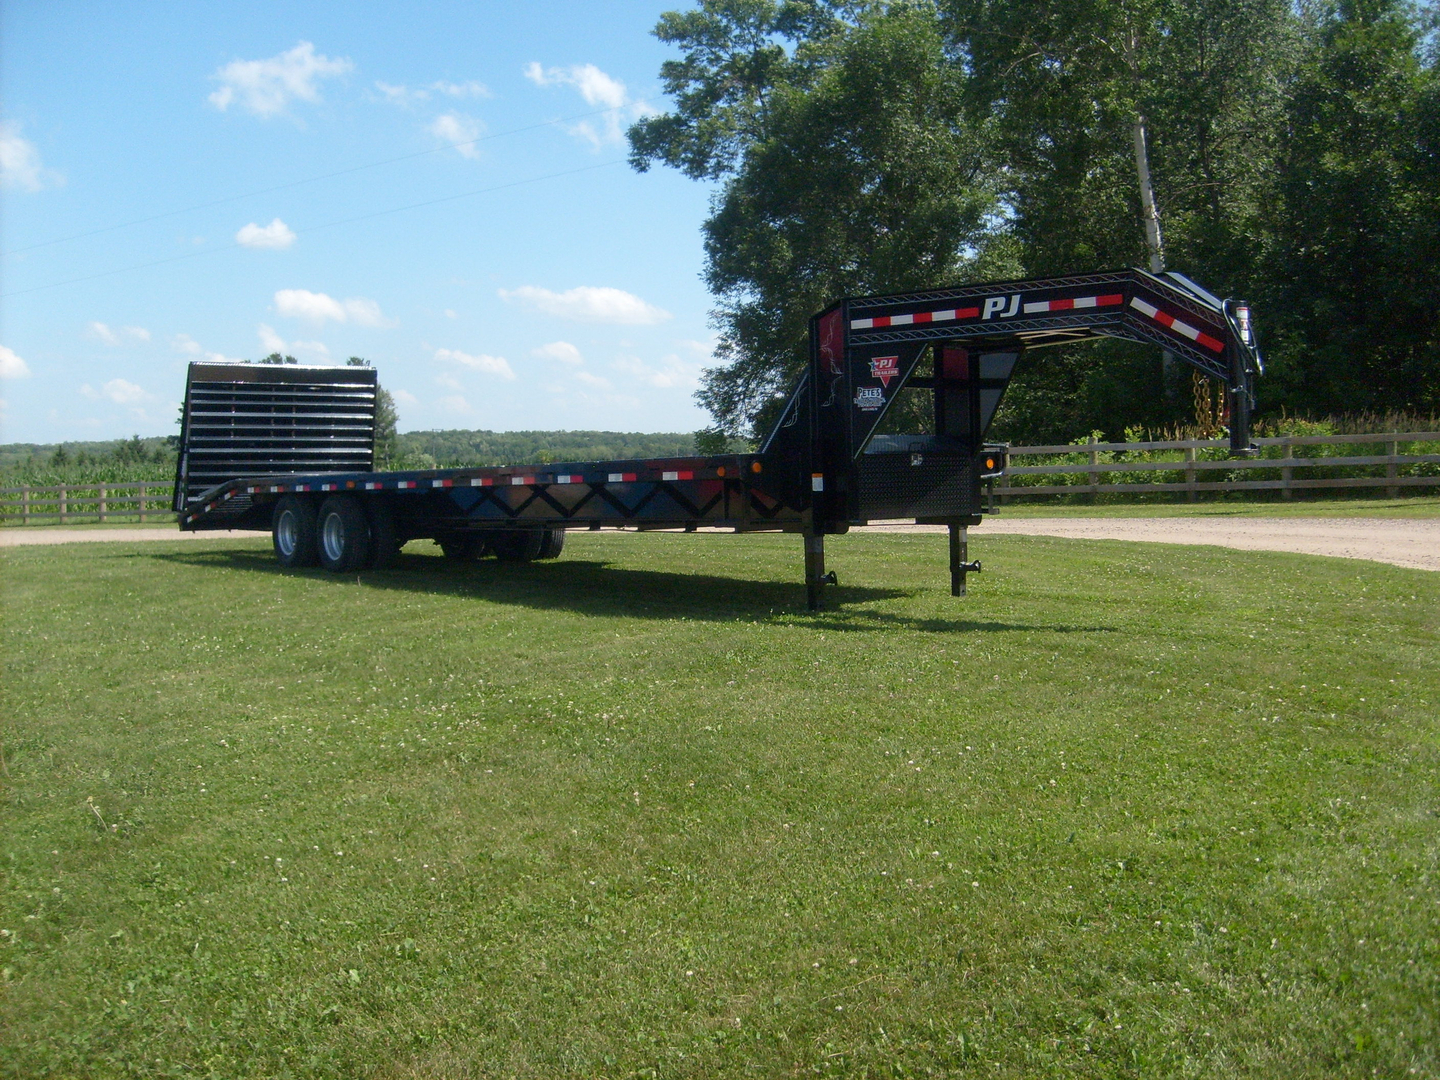 Flatdeck Hydraulic Tails Power Deck Trailer Wiring Diagram Pj Offers A Few Trailers With Hydraulically Controlled Dovetails Why Break Your Back Lifting Ramps When You Can Simply Push Button